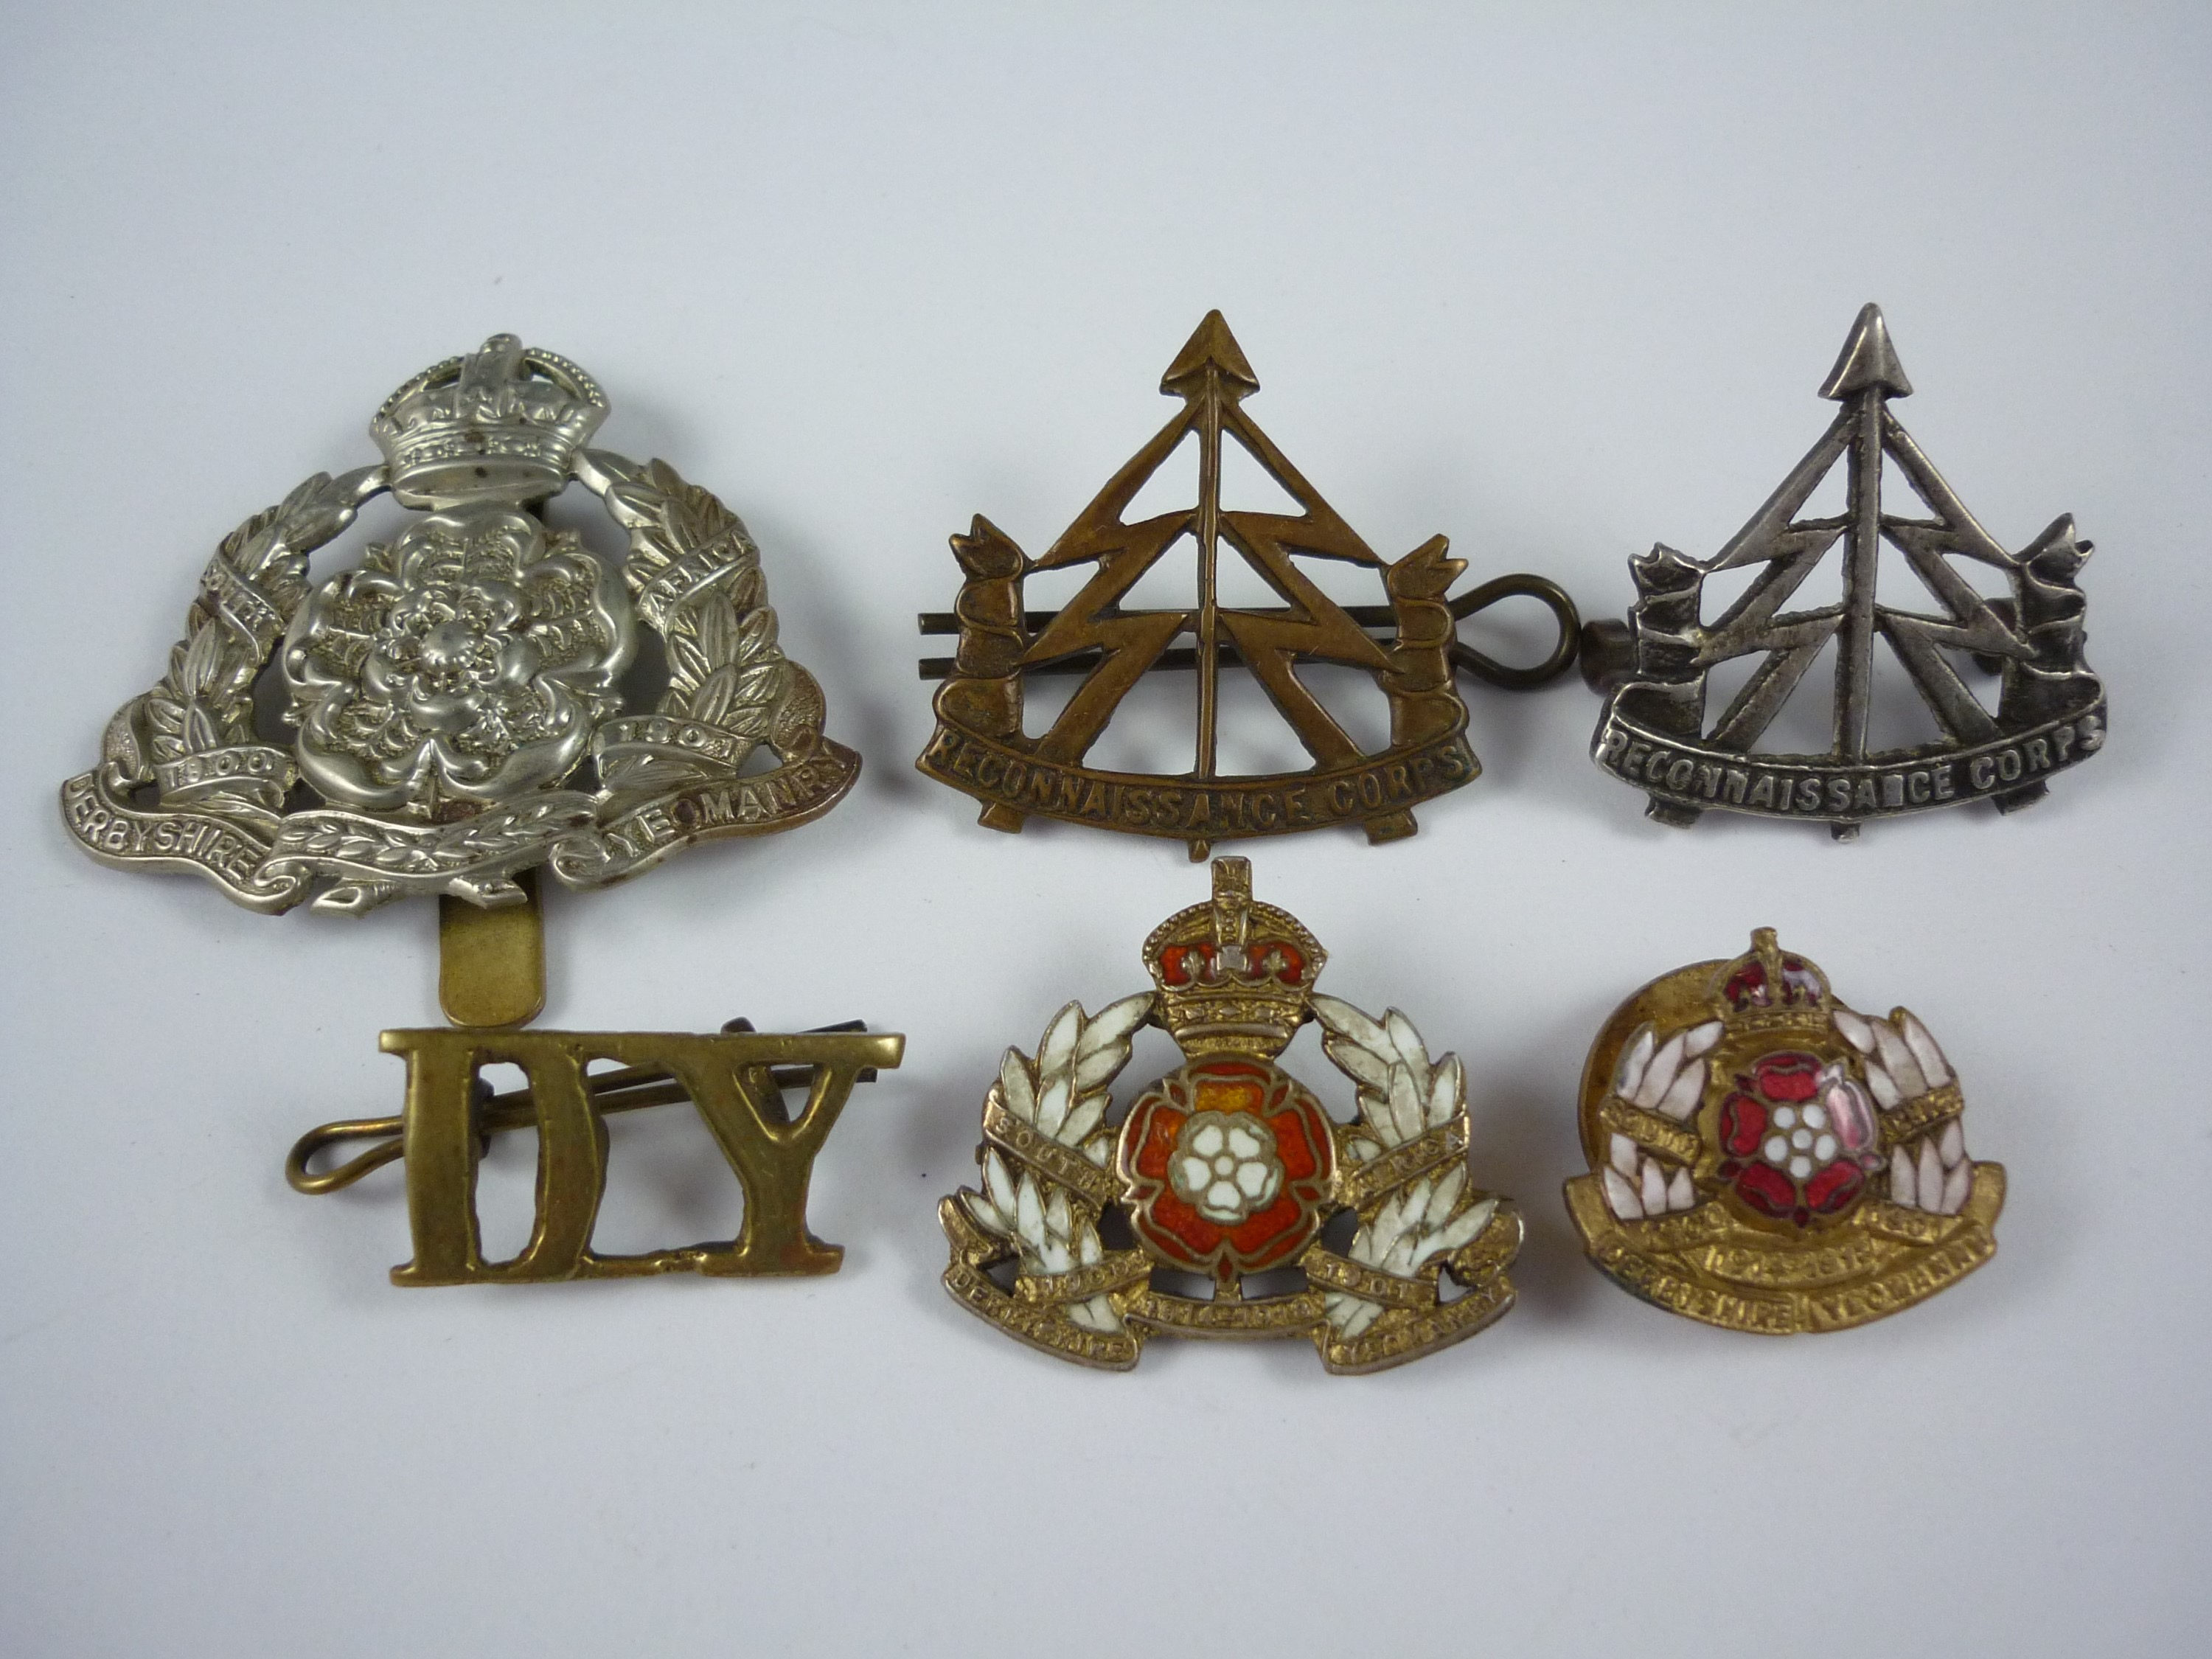 Lot 45 - Derbyshire Yeomanry insignia including an enamelled silver sweetheart brooch, together with two